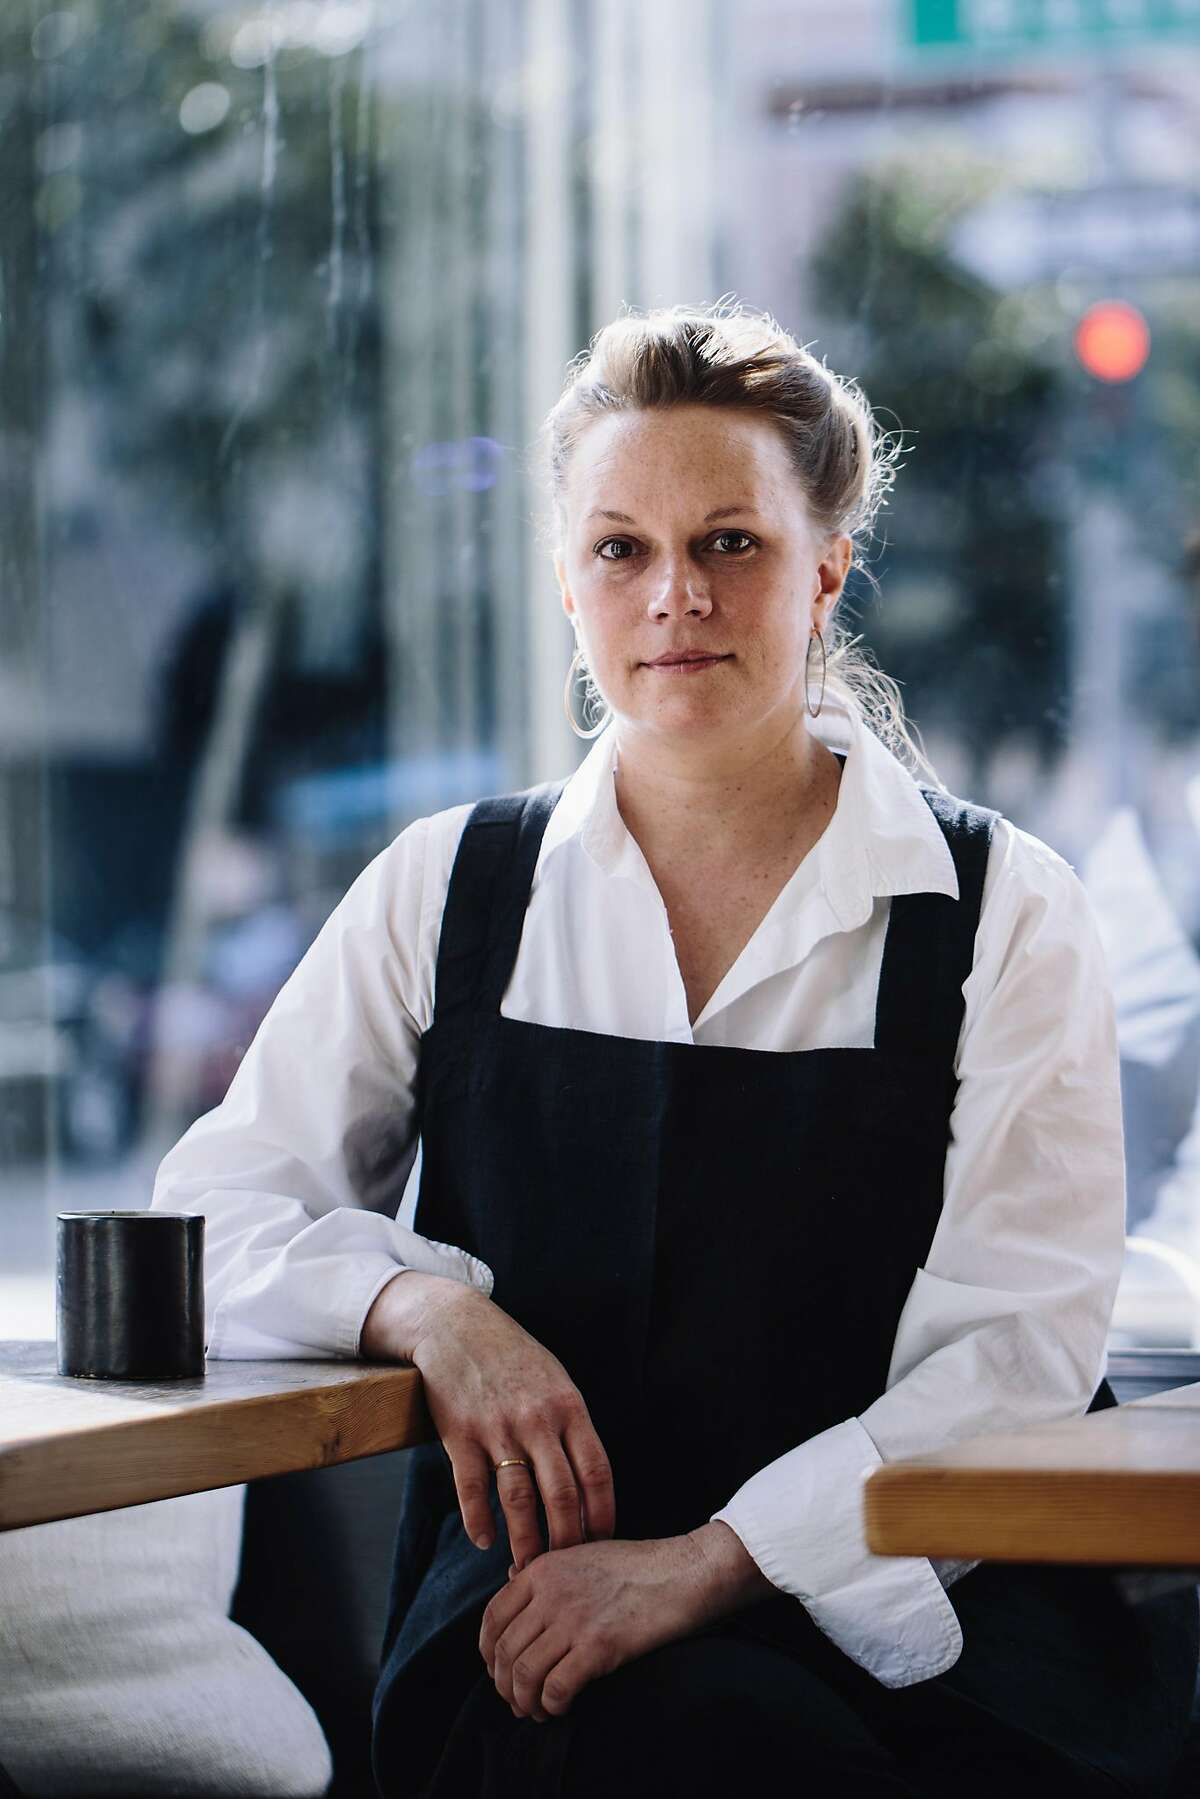 Chef Melissa Perello of Octavia poses for a portrait in San Francisco, Calif. on Friday, March 16, 2018.